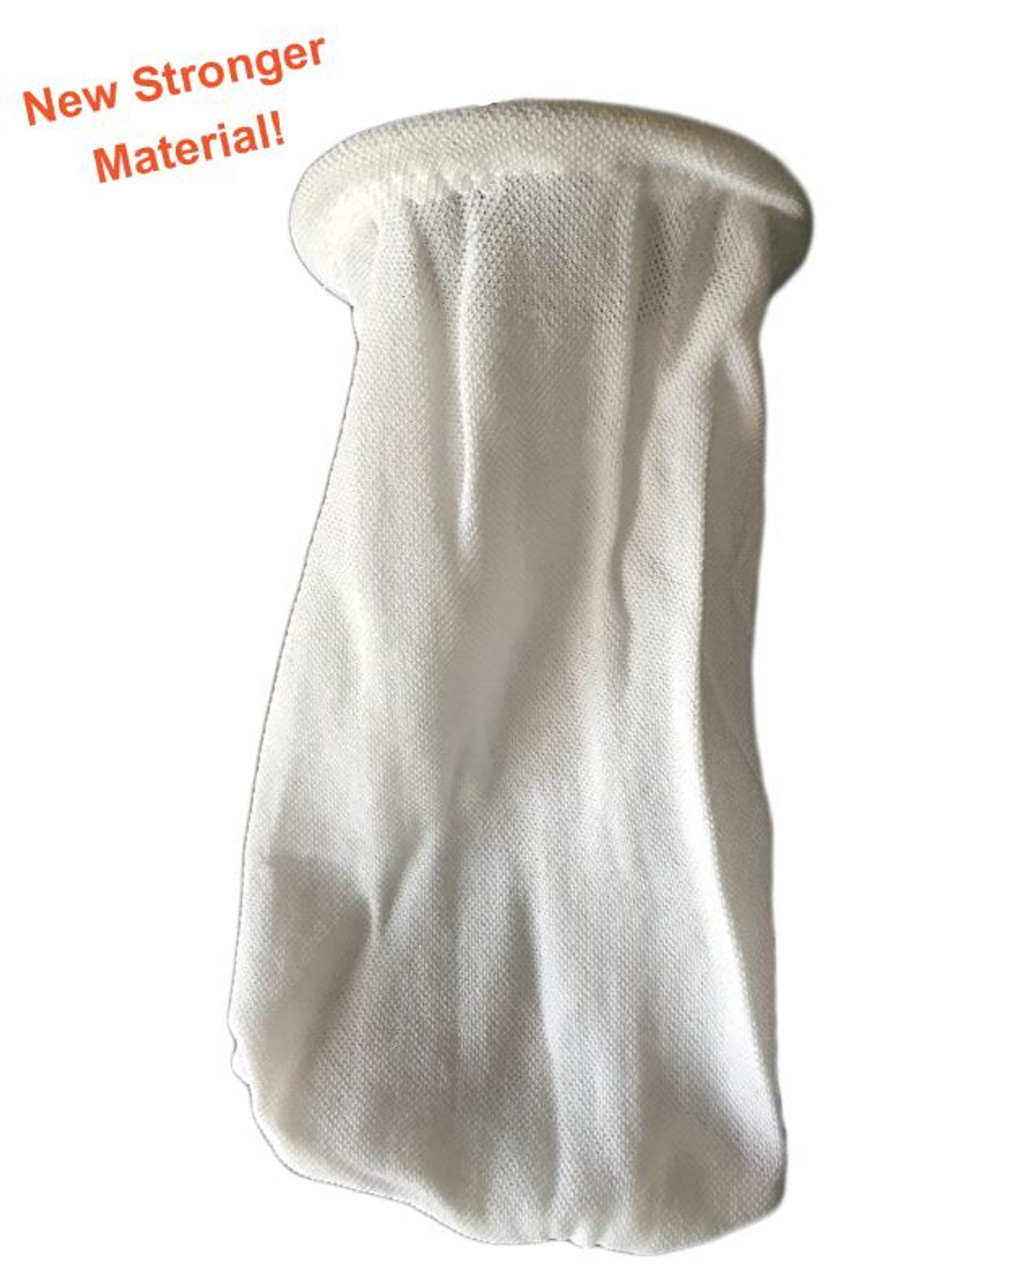 Solid Drain Sock (white) - 2 inch